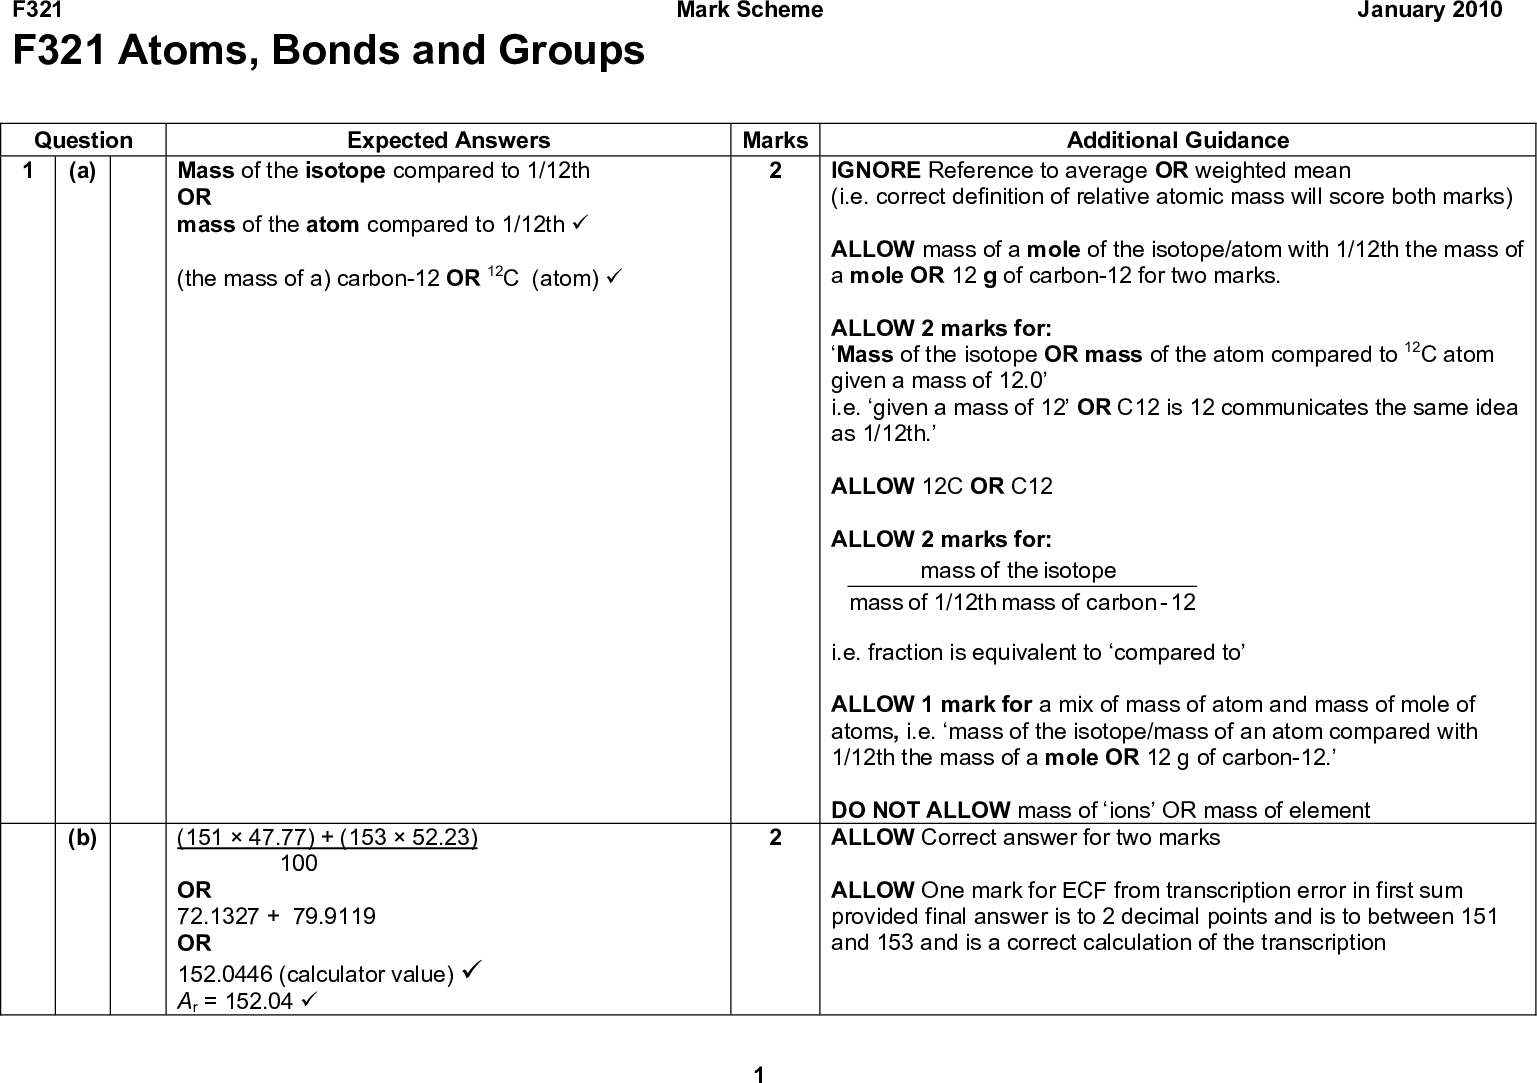 F321 F321 Atoms, Bonds and Groups Mark Scheme January 2010 Question 1 (a) Mass of the isotope compared to 1/12th Expected Answers OR mass of the atom compared to 1/12th (cid:57) (the mass of a) carbon-12 OR 12C (atom) (cid:57) (15147.77) + (15352.23) 100 OR 72.1327 + 79.9119 OR 152.0446 (calculator value) (cid:57) Ar = 152.04 (cid:57) (b) Additional Guidance IGNORE Reference to average OR weighted mean (i.e. correct definition of relative atomic mass will score both marks) ALLOW mass of a mole of the isotope/atom with 1/12th the mass of a mole OR 12 g of carbon-12 for two marks. ALLOW 2 marks for: Mass of the isotope OR mass of the atom compared to 12C atom given a mass of 12.0 i.e. given a mass of 12 OR C12 is 12 communicates the same idea as 1/12th. ALLOW 12C OR C12 ALLOW 2 marks for: the of mass isotope of mass 1/12th of mass carbon 12- i.e. fraction is equivalent to compared to ALLOW 1 mark for a mix of mass of atom and mass of mole of atoms, i.e. mass of the isotope/mass of an atom compared with 1/12th the mass of a mole OR 12 g of carbon-12. DO NOT ALLOW mass of ions OR mass of element ALLOW Correct answer for two marks ALLOW One mark for ECF from transcription error in first sum provided final answer is to 2 decimal points and is to between 151 and 153 and is a correct calculation of the transcription Marks<br />  F321 Mark Scheme January 2010 Question (c) (i) (ii) Expected Answers 153Eu has (2) more neutrons OR 153Eu has 90 neutrons AND 151Eu has 88 neutrons (cid:57) (It has the) same number of protons AND electrons OR Both have 63 protons and 63 electrons (cid:57) Marks Additional Guidance ALLOW There are a different number of neutrons IGNORE Correct references to protons / electrons DO NOT ALLOW Incorrect references to protons / electrons ALLOW Same number of protons AND same electron configuration DO NOT ALLOW Same number of protons without reference to electrons (and vice versa)<br />  F321 Question (d) Expected Answers Xe has a bigger atomic radius OR X